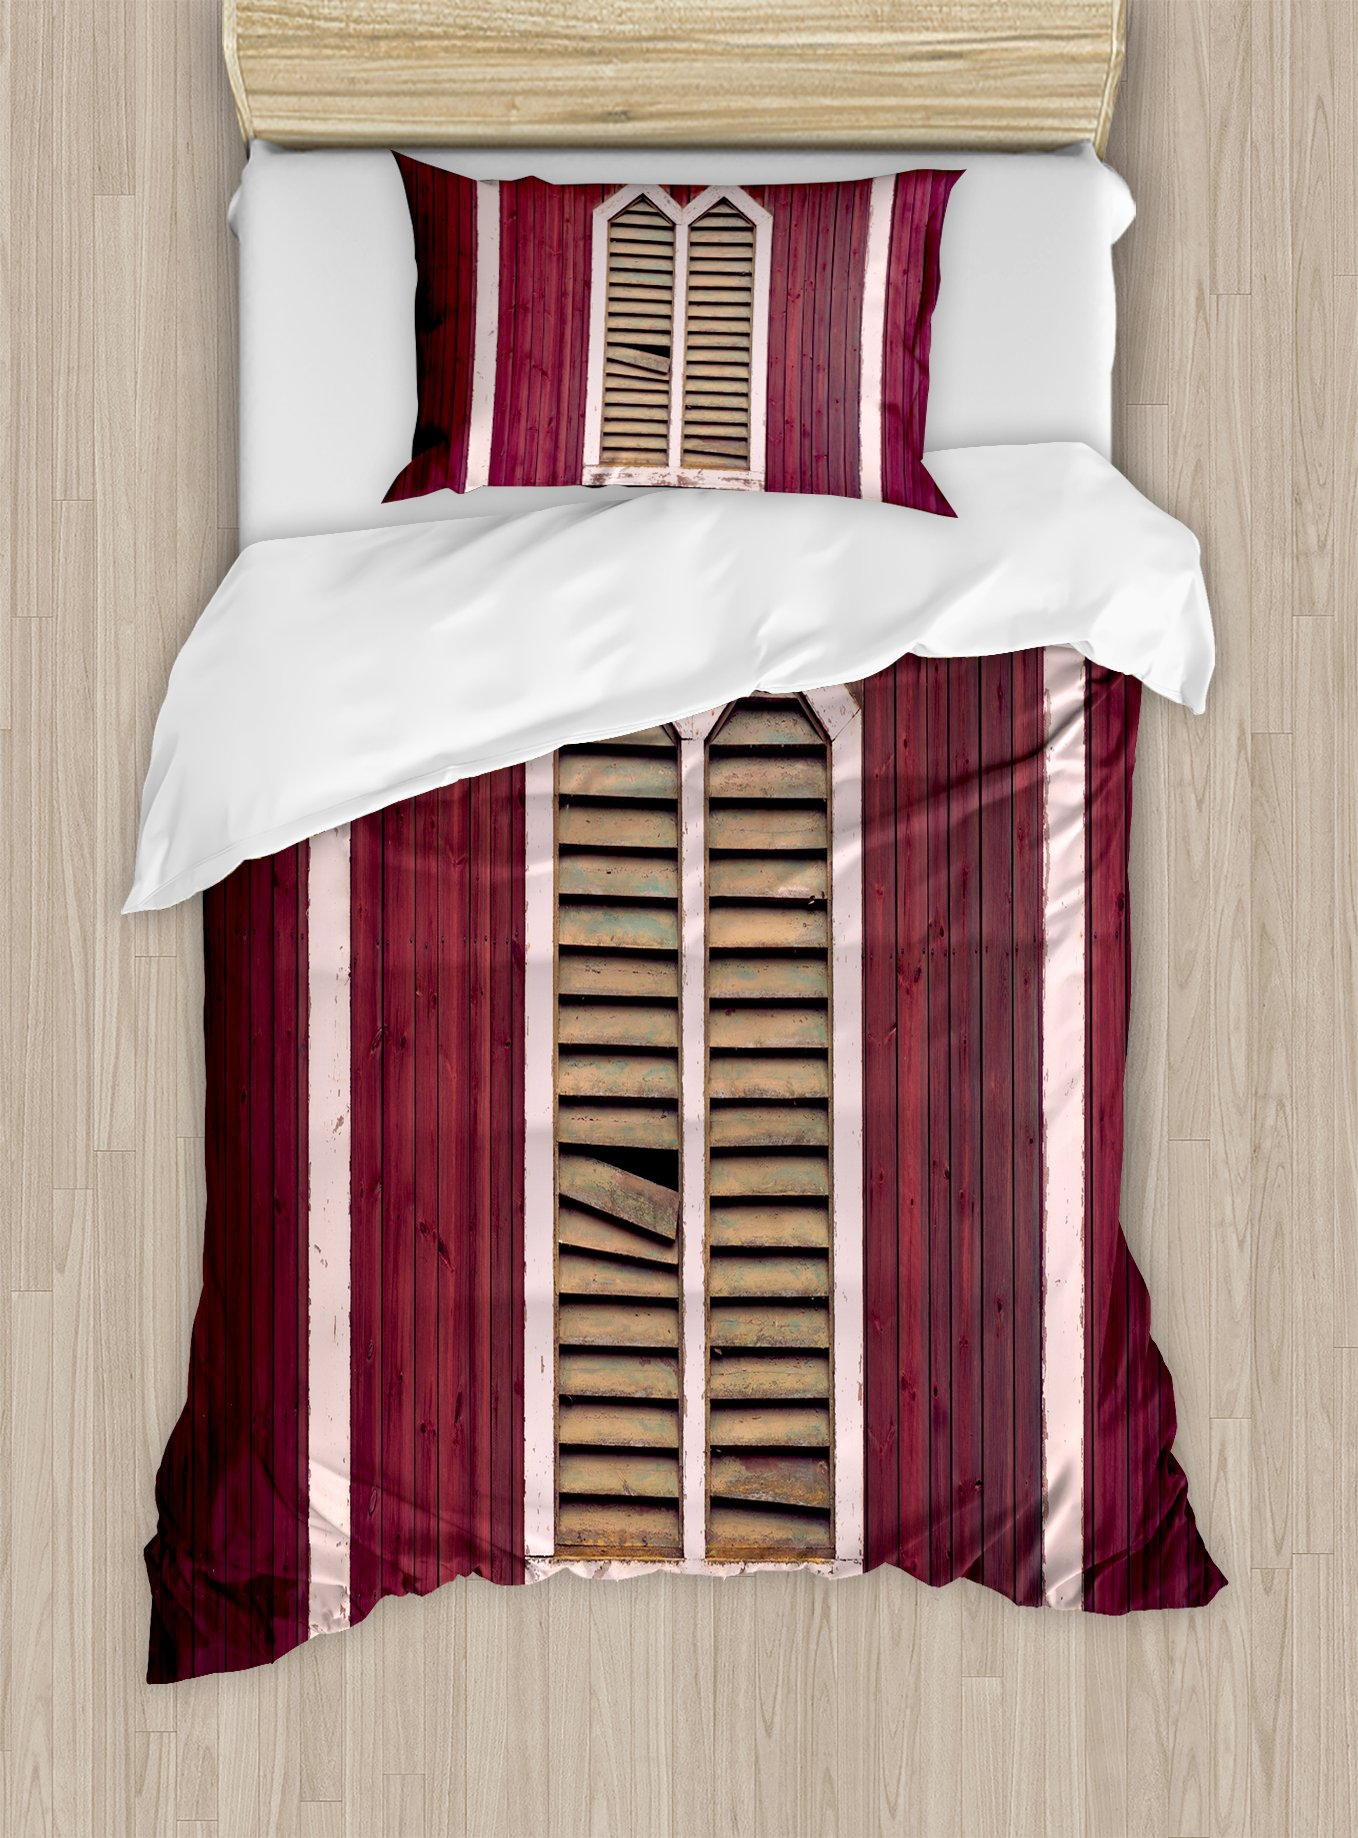 Ambesonne Shutters Duvet Cover Set Twin Size, Window Frame with Shutters on a Wooden Wall Vintage Style Artwork Print, Decorative 2 Piece Bedding Set with 1 Pillow Sham, Burgundy and Pink